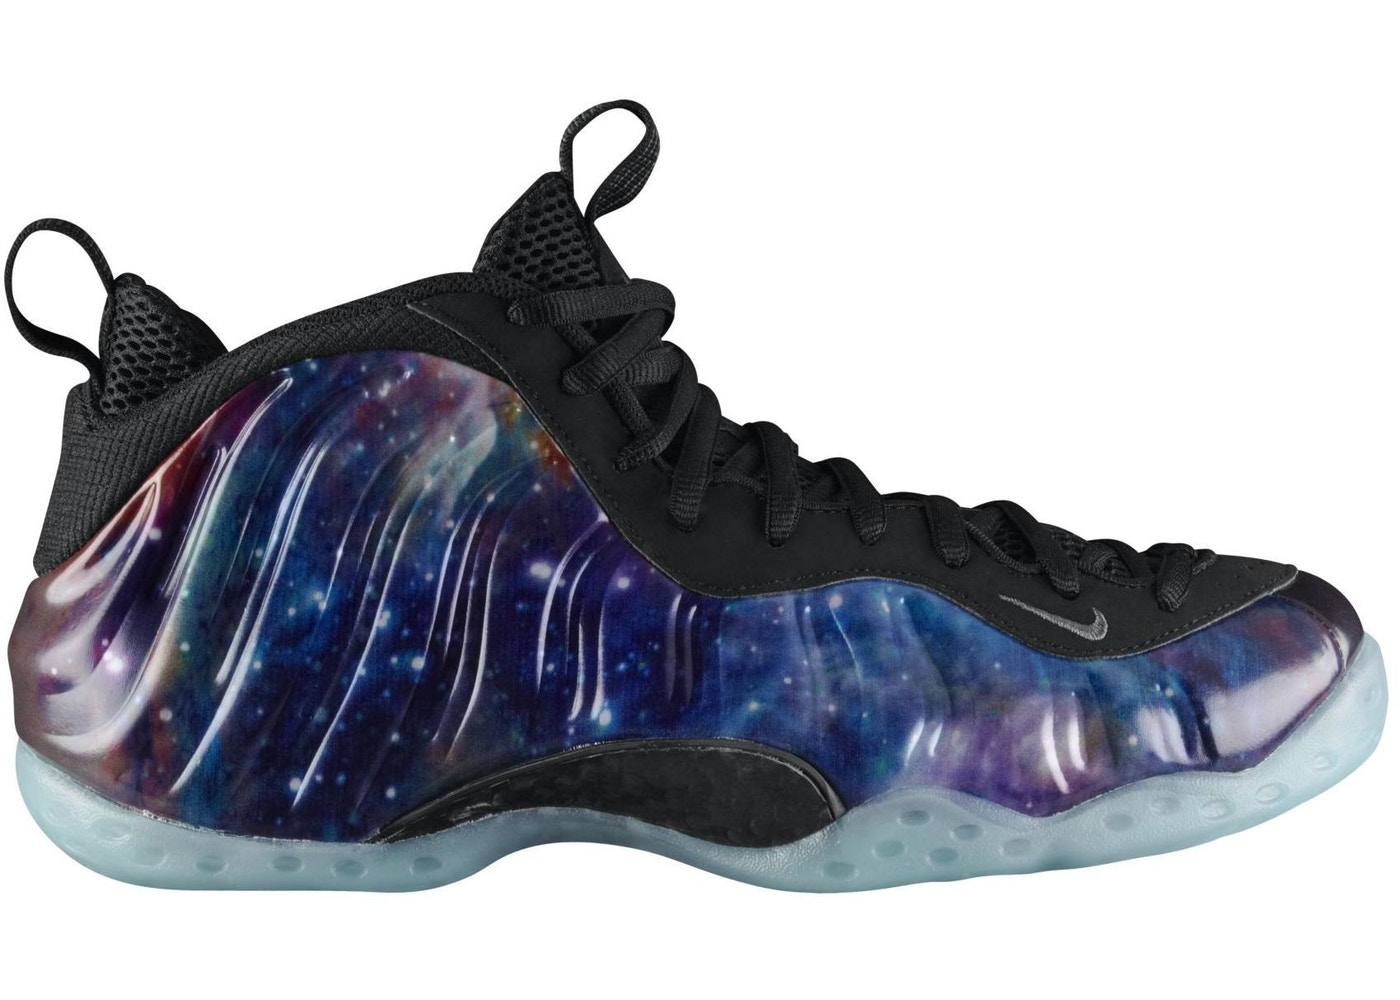 095790687da Air Foamposite One NRG Galaxy - 521286-800